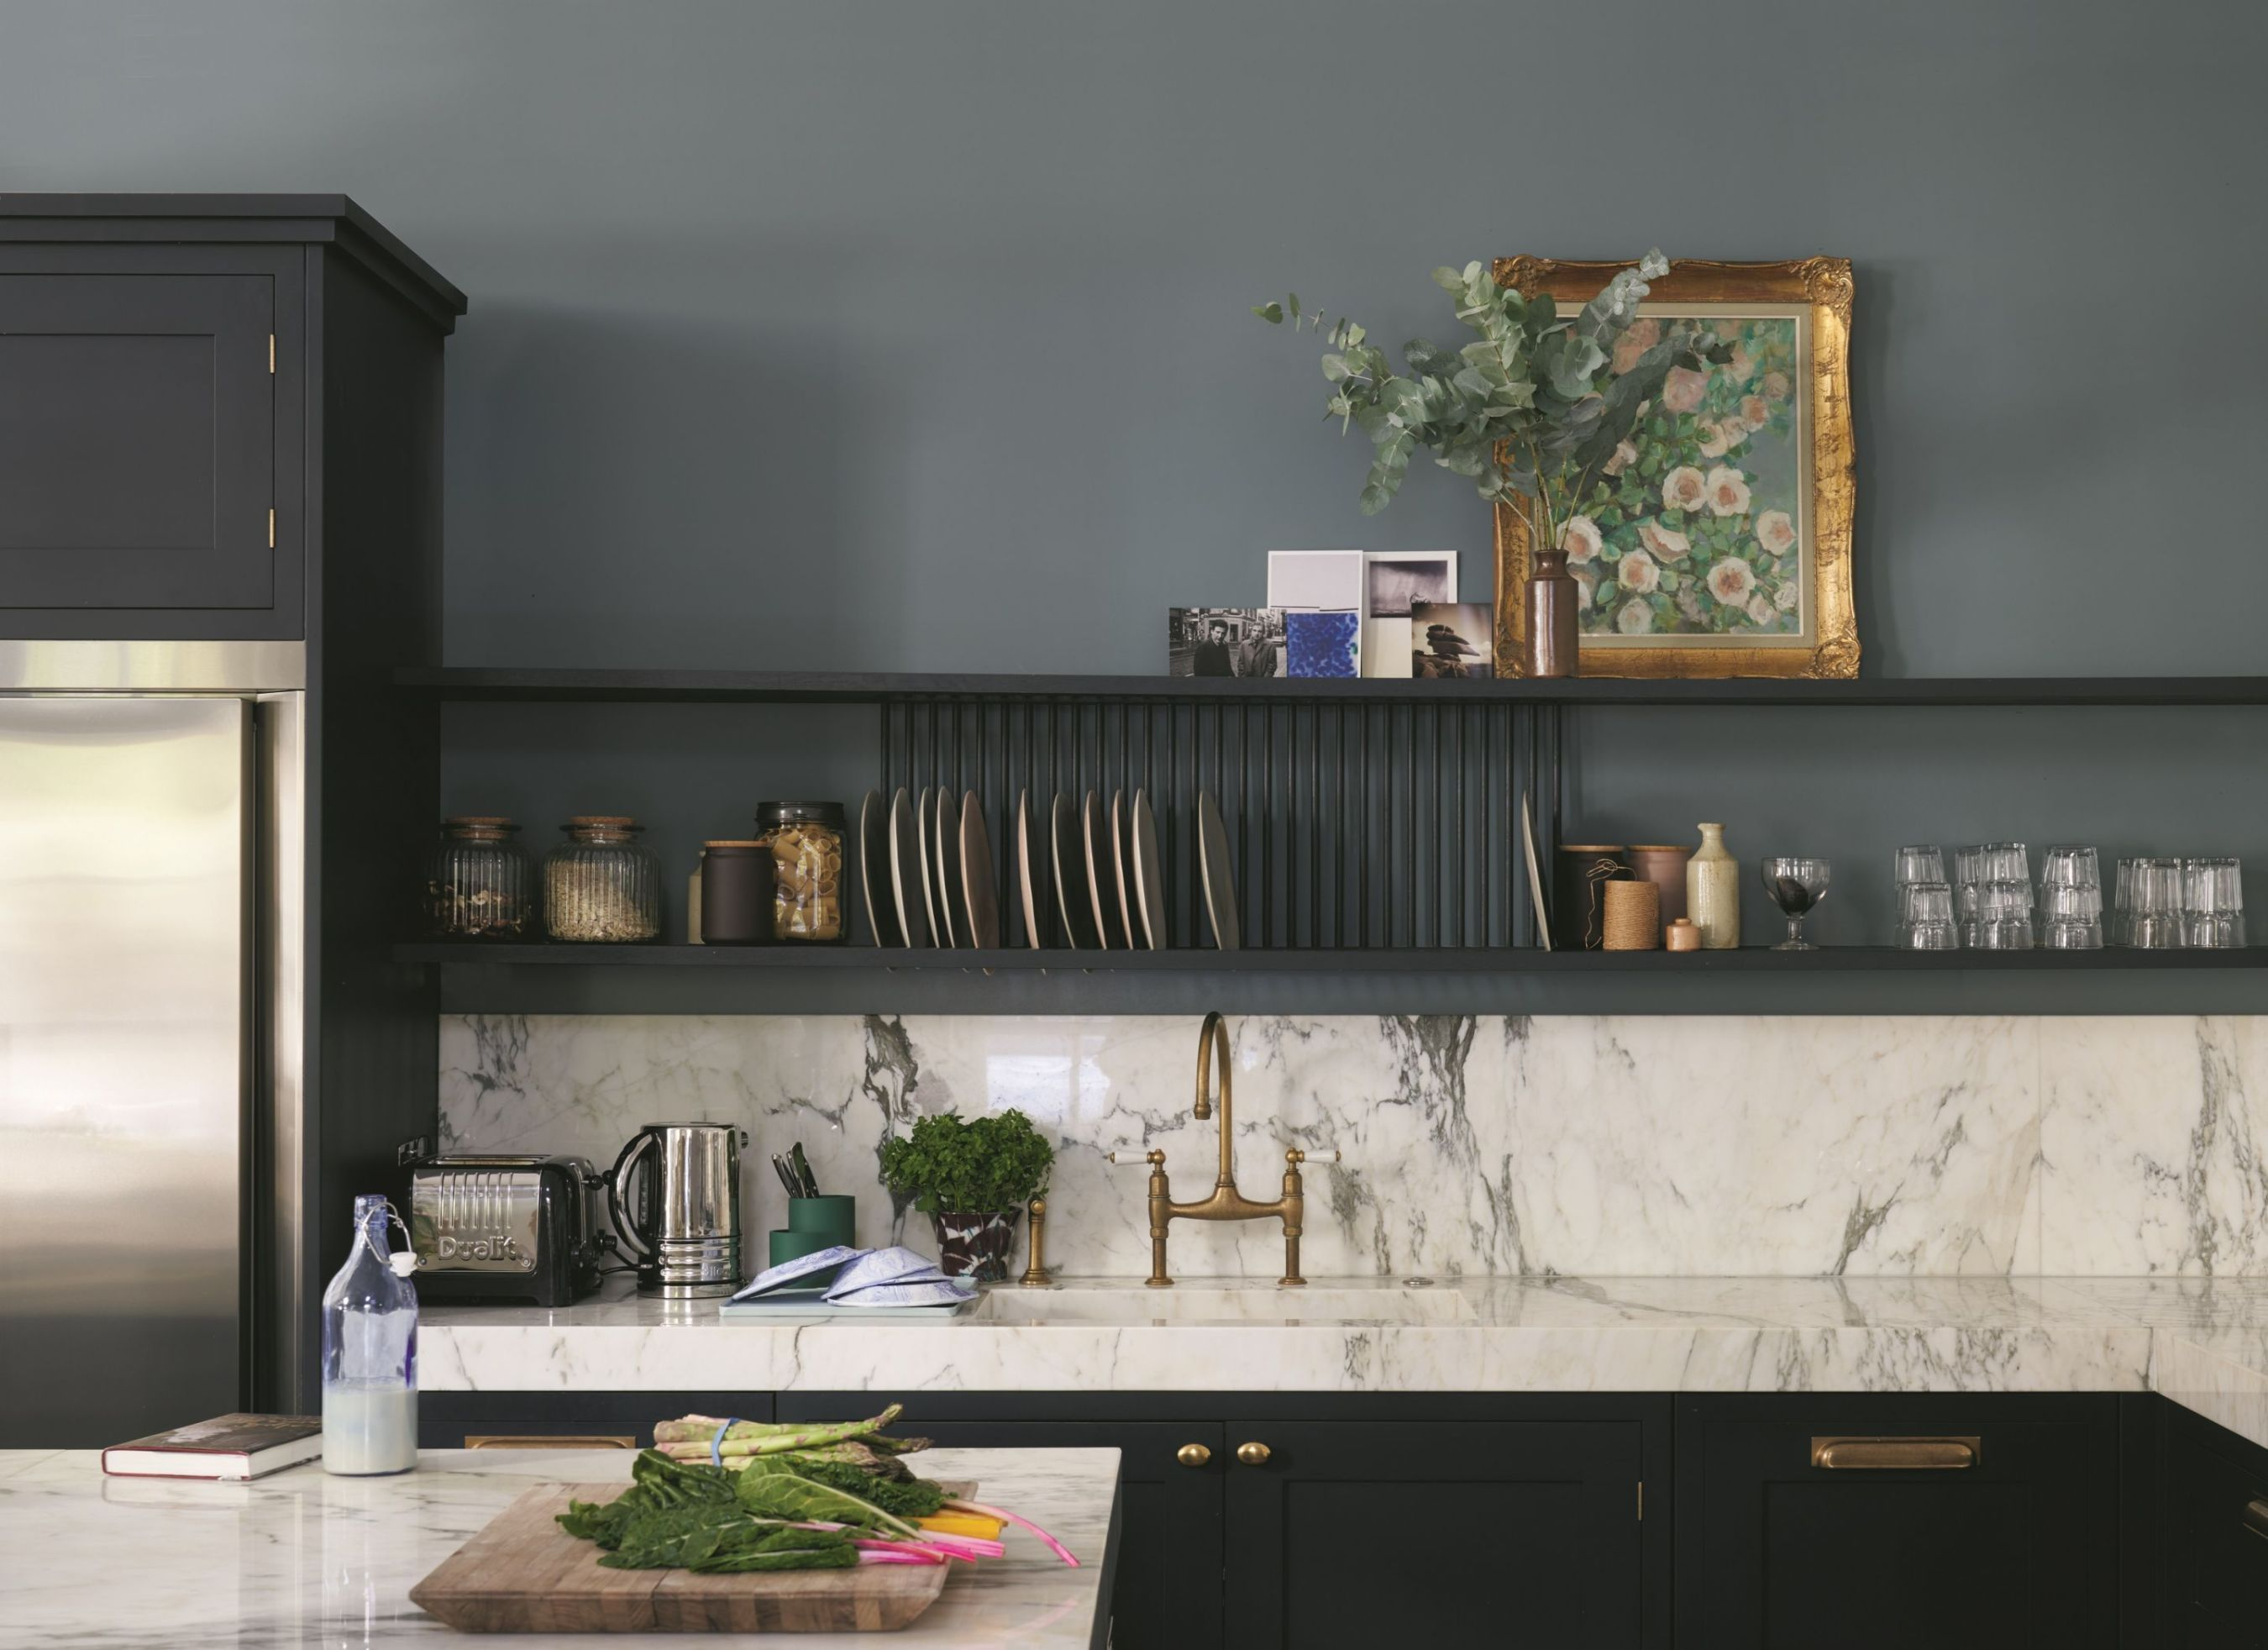 Paint Inspiration 20 Colorful Rooms We Love Black Southern Belle Kitchen Inspirations Oval Room Blue Farrow Ball